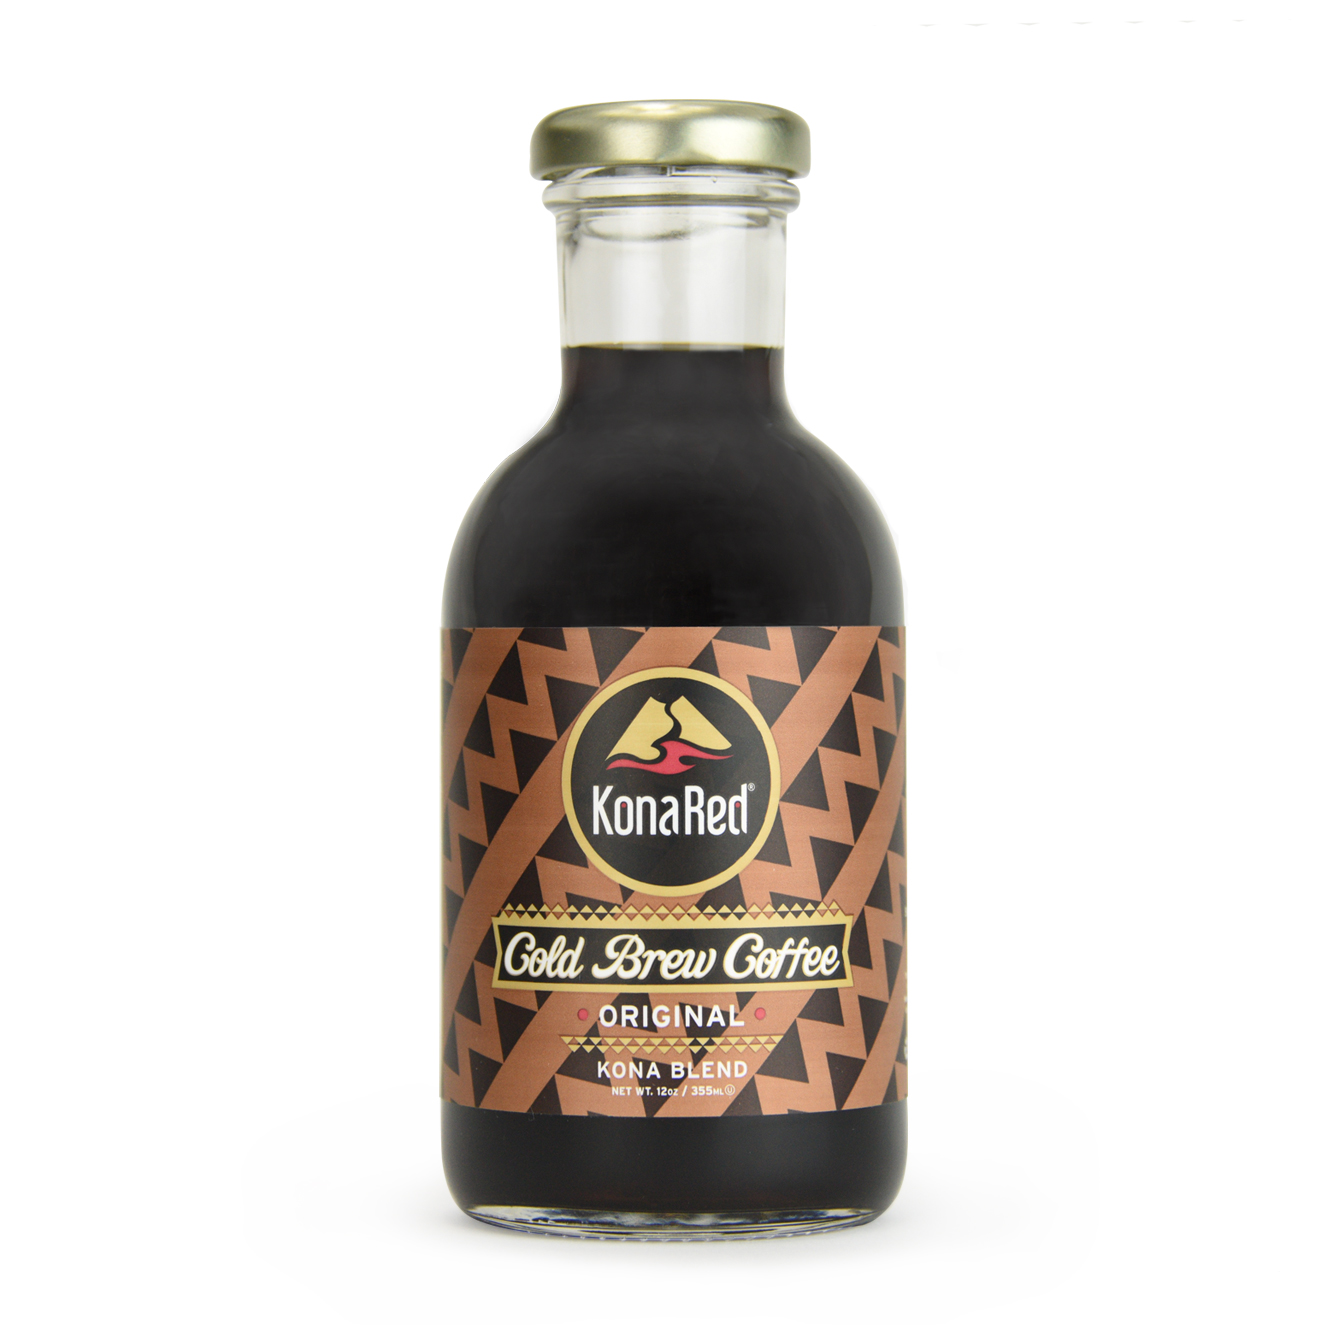 KonaRed Original Cold Brew